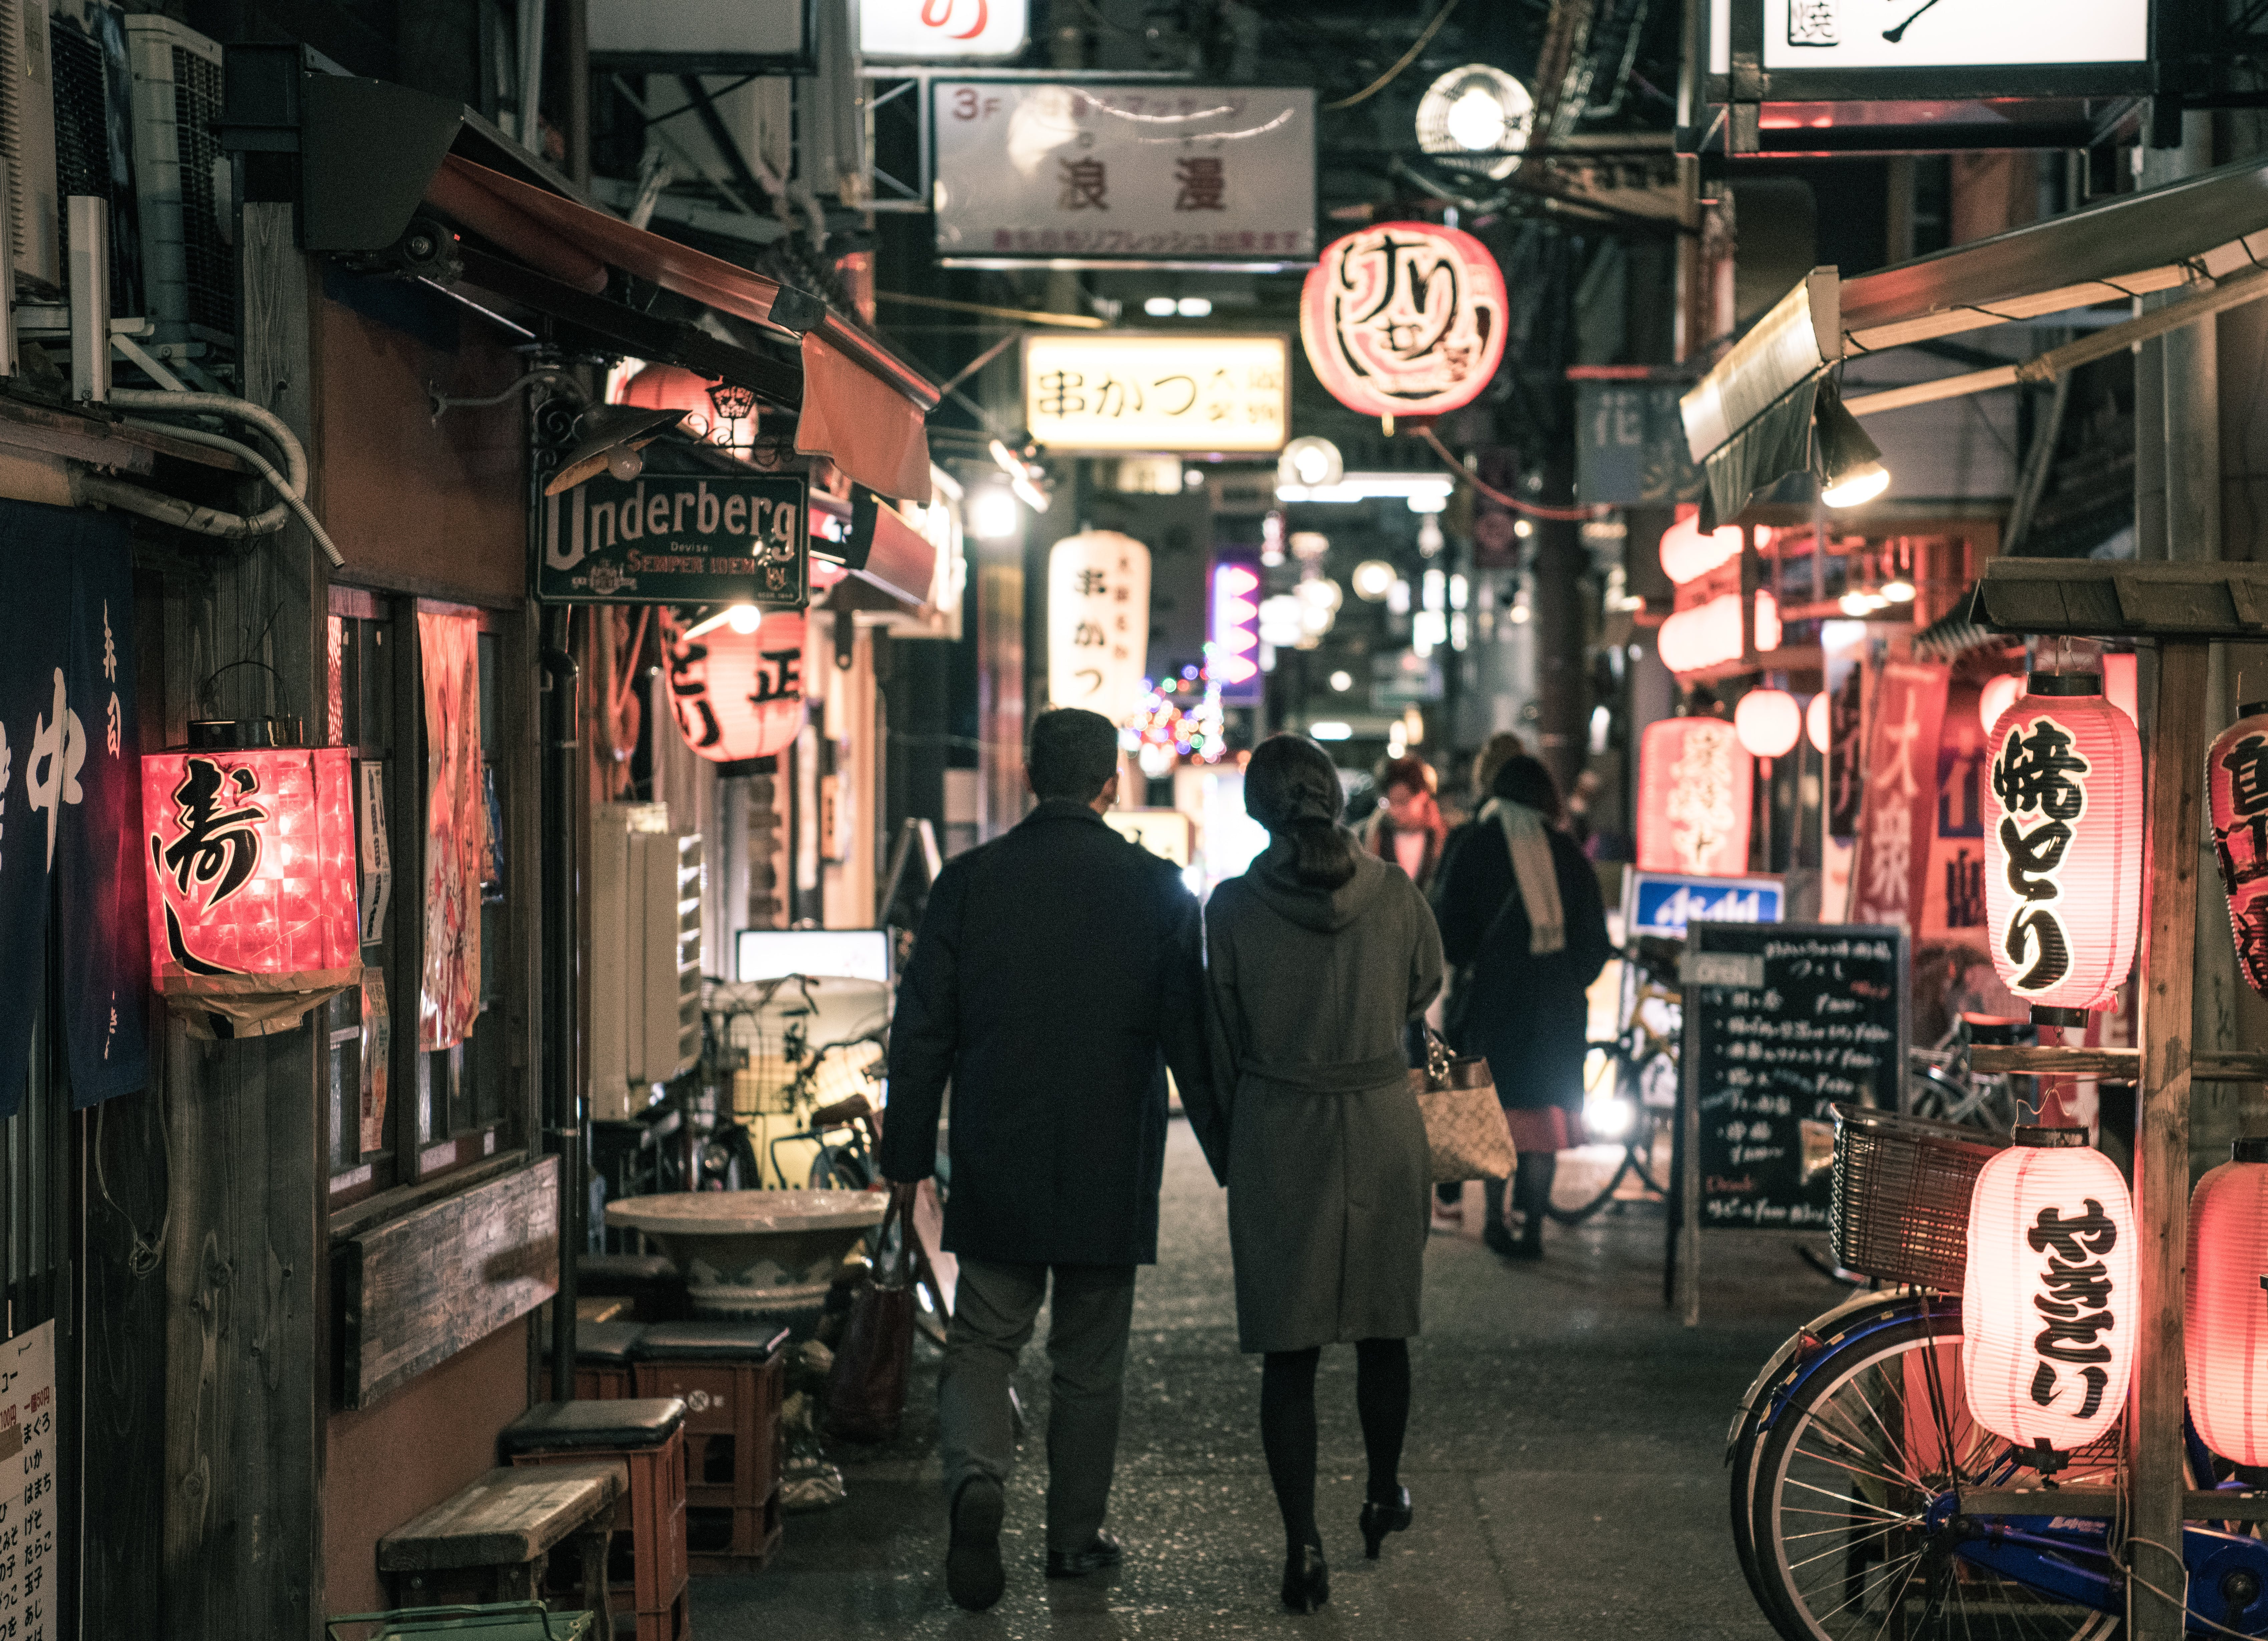 Couple Walking On Street At Night